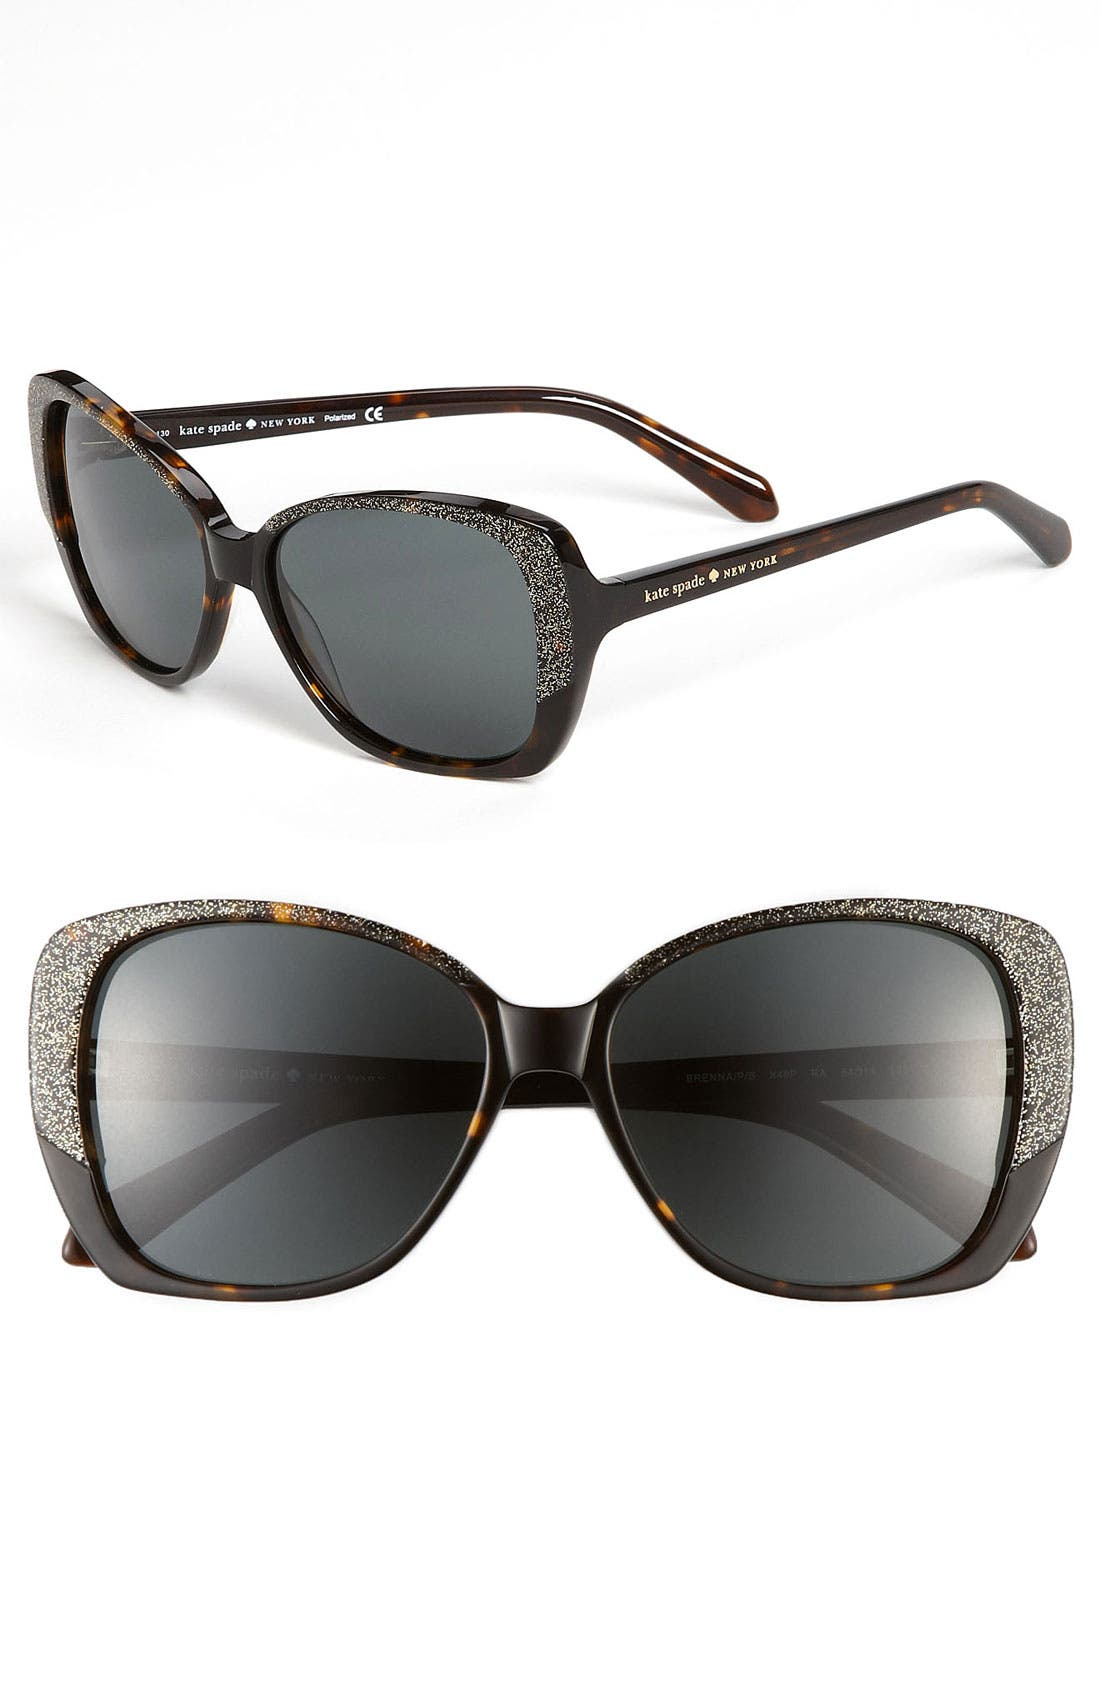 Main Image - kate spade new york 'brenna' 54mm polarized sunglasses